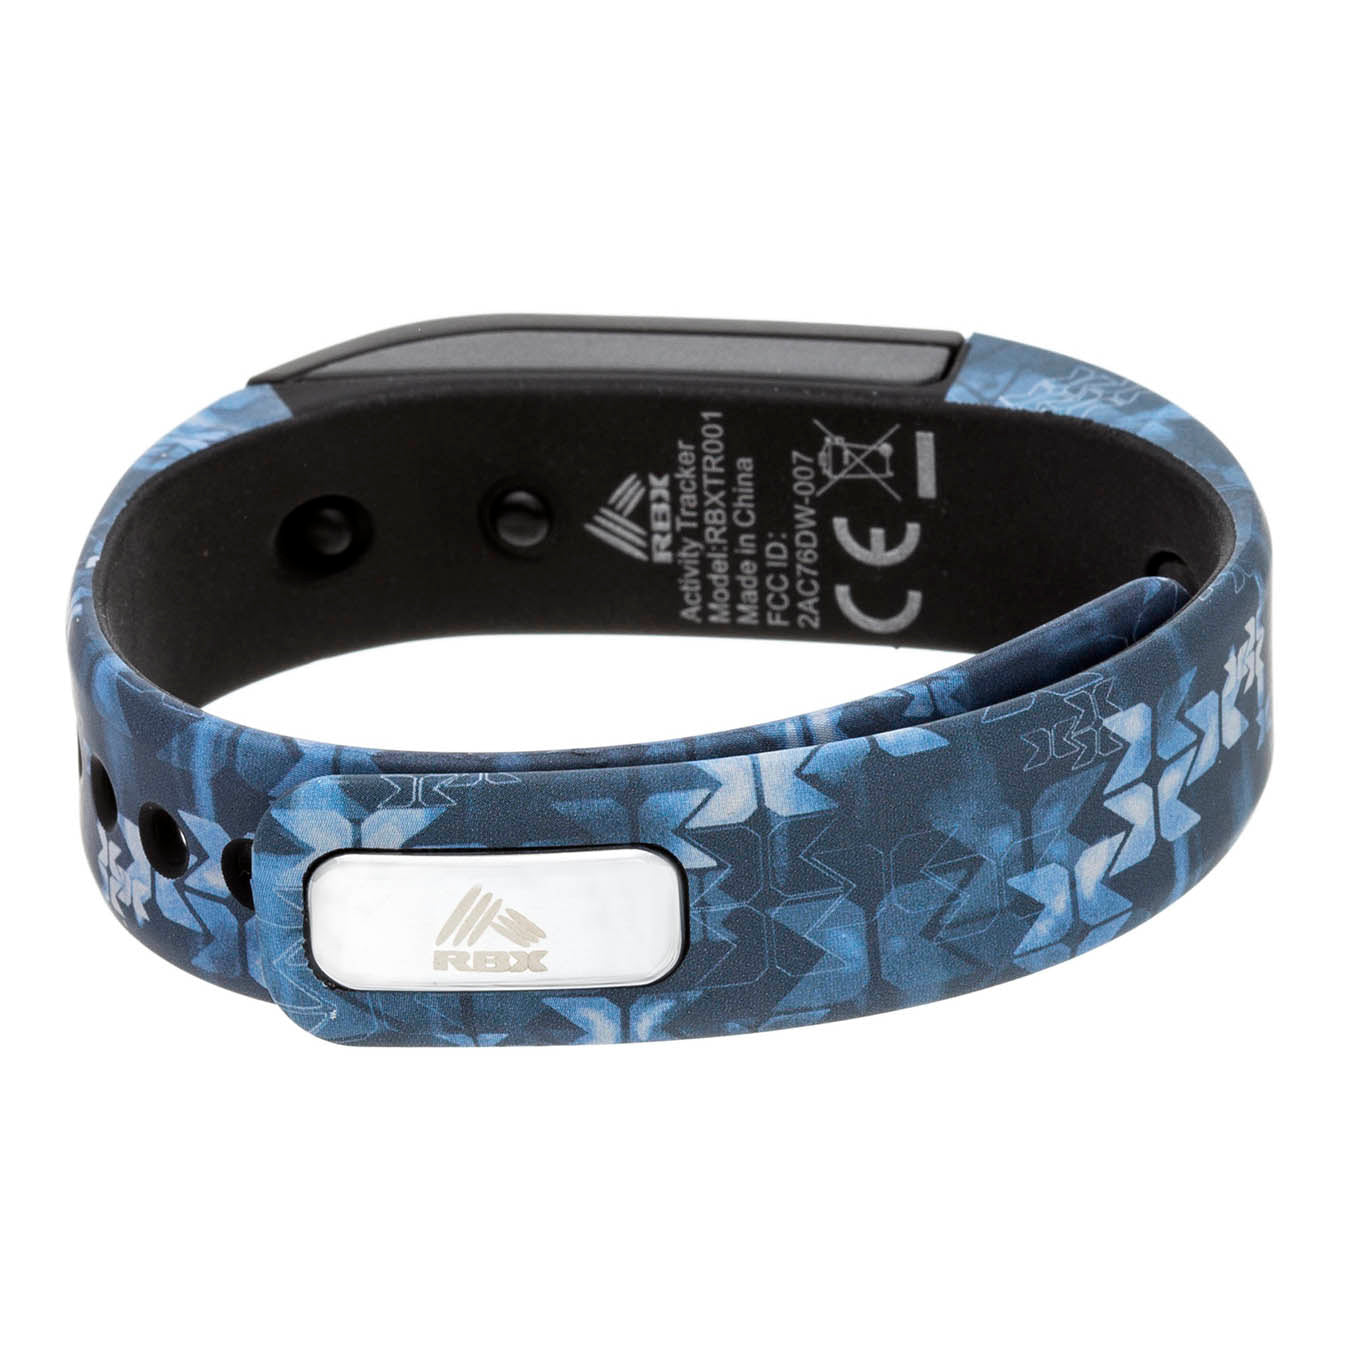 RBX Printed Activity Fitness Tracker with Caller ID and Notification